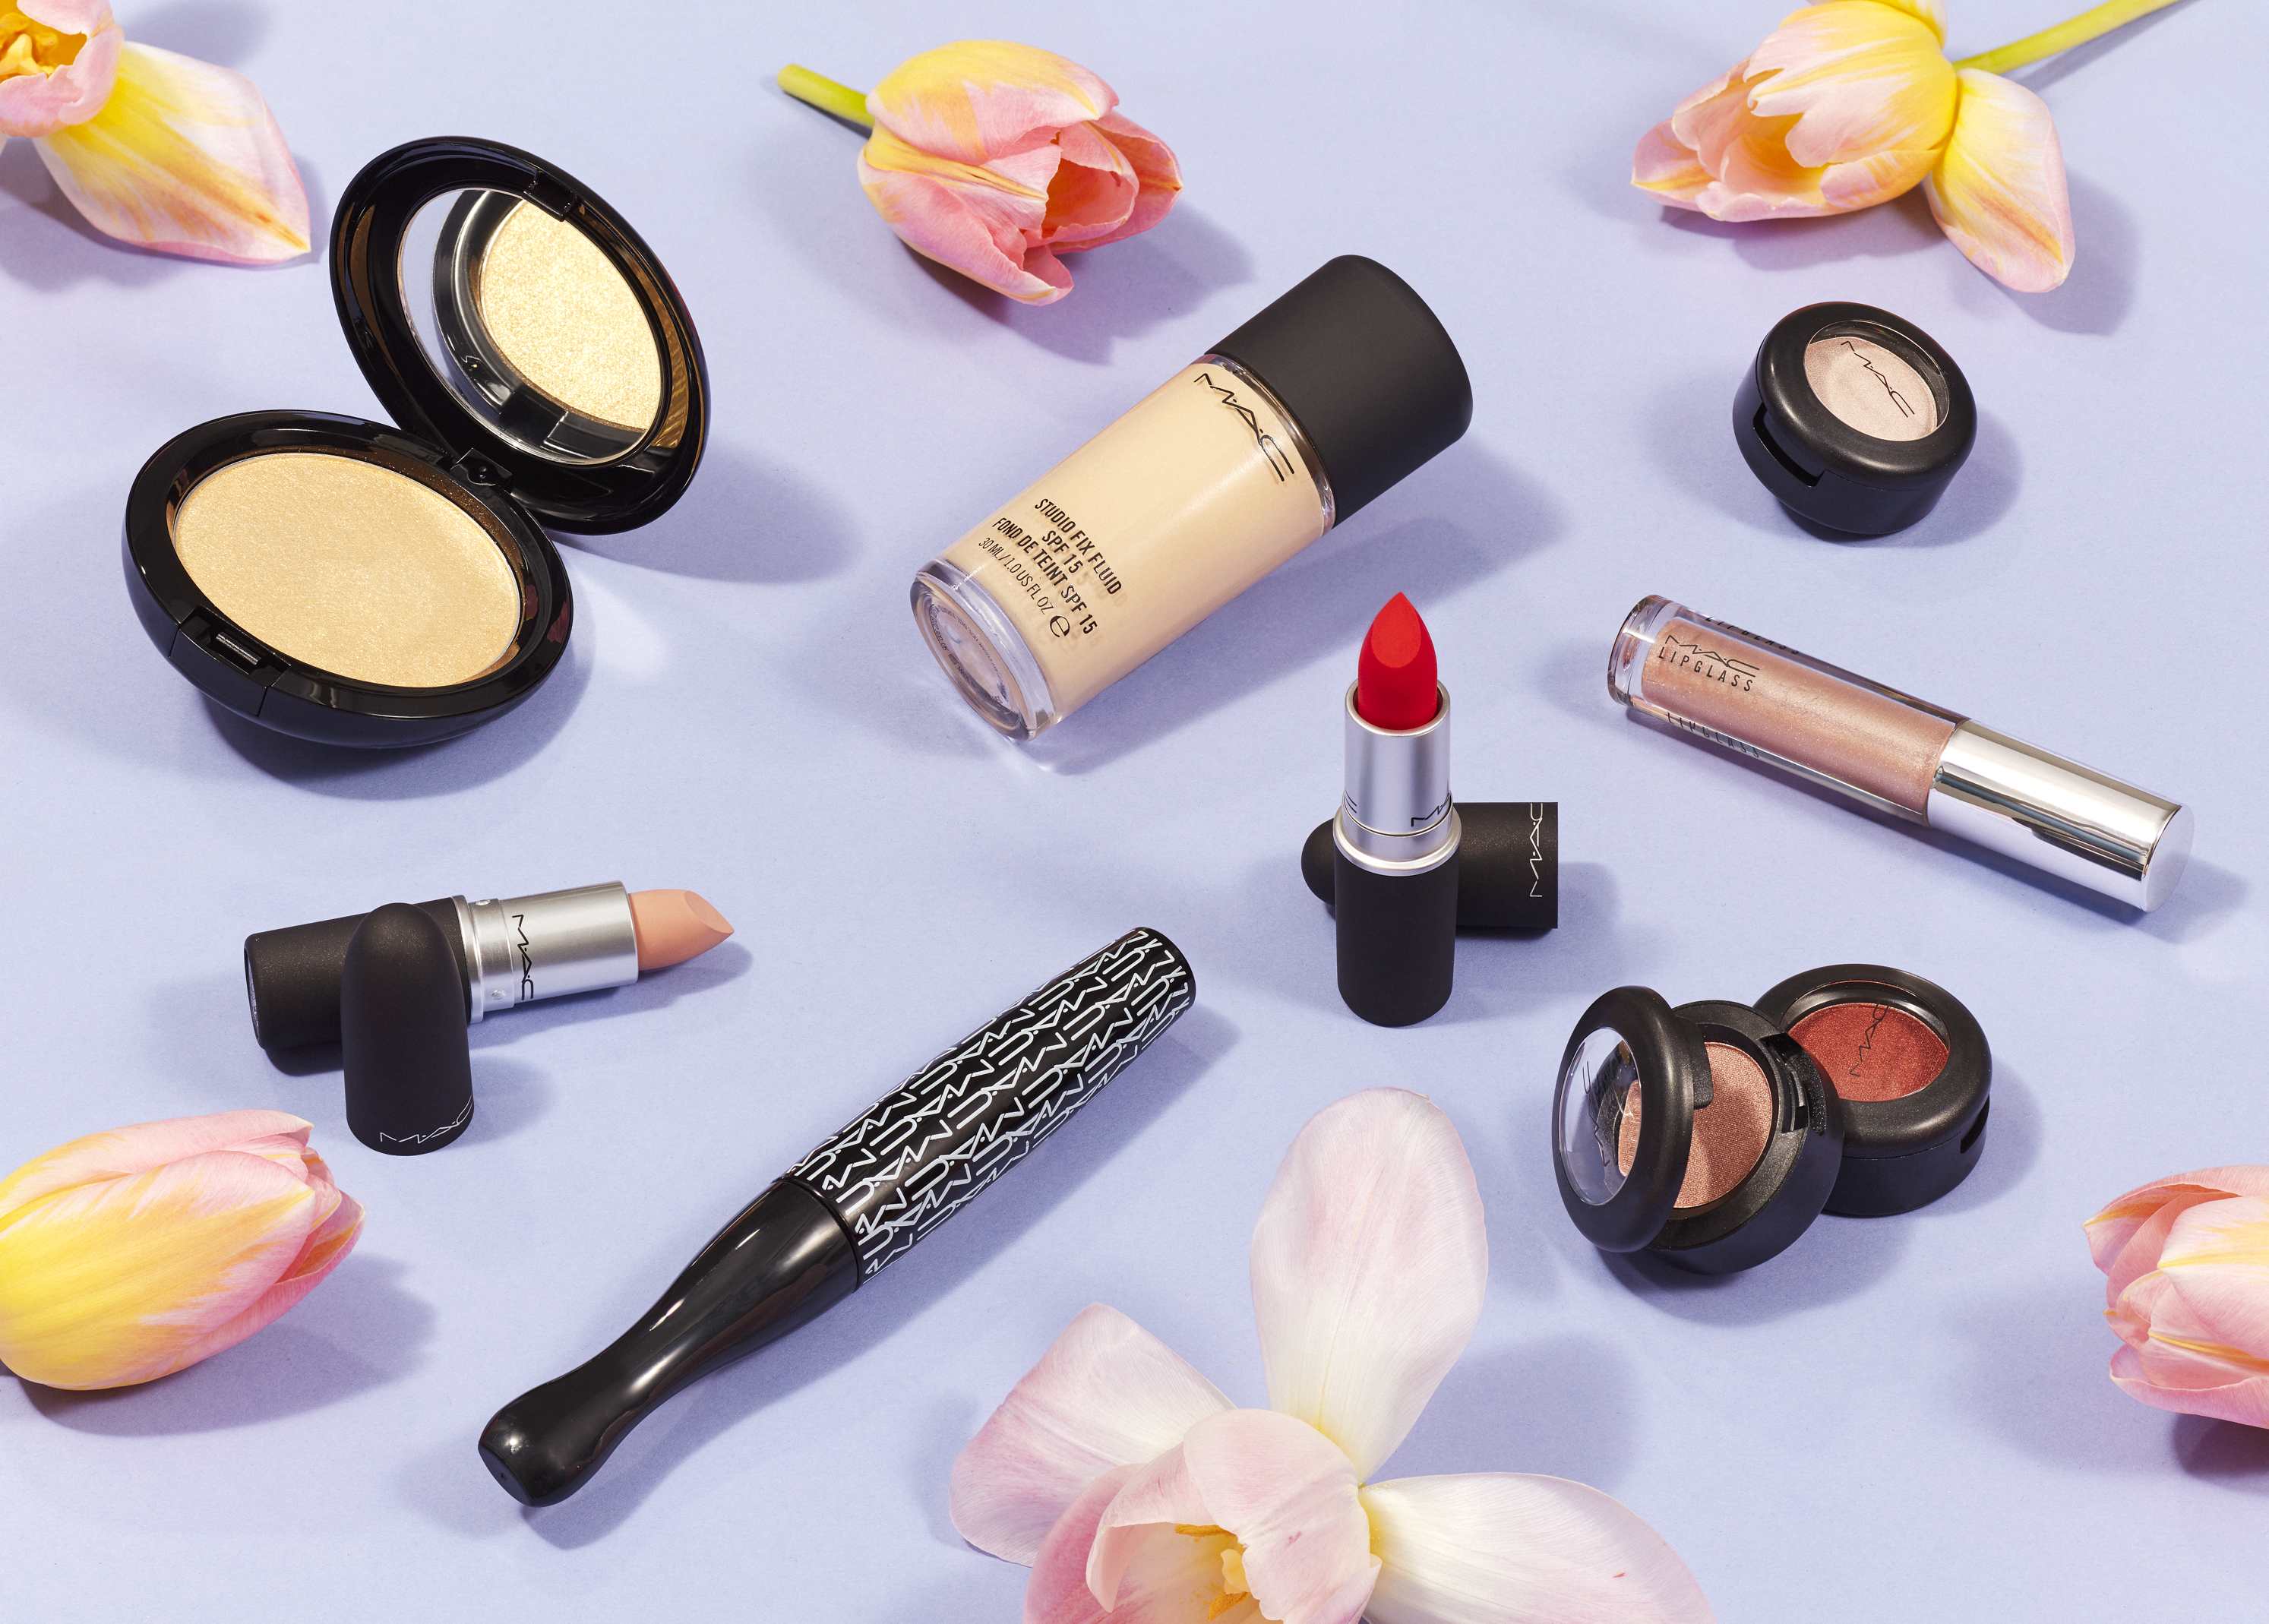 mac makeup - ZALANDO LANCEERT BEAUTY ASSORTIMENT